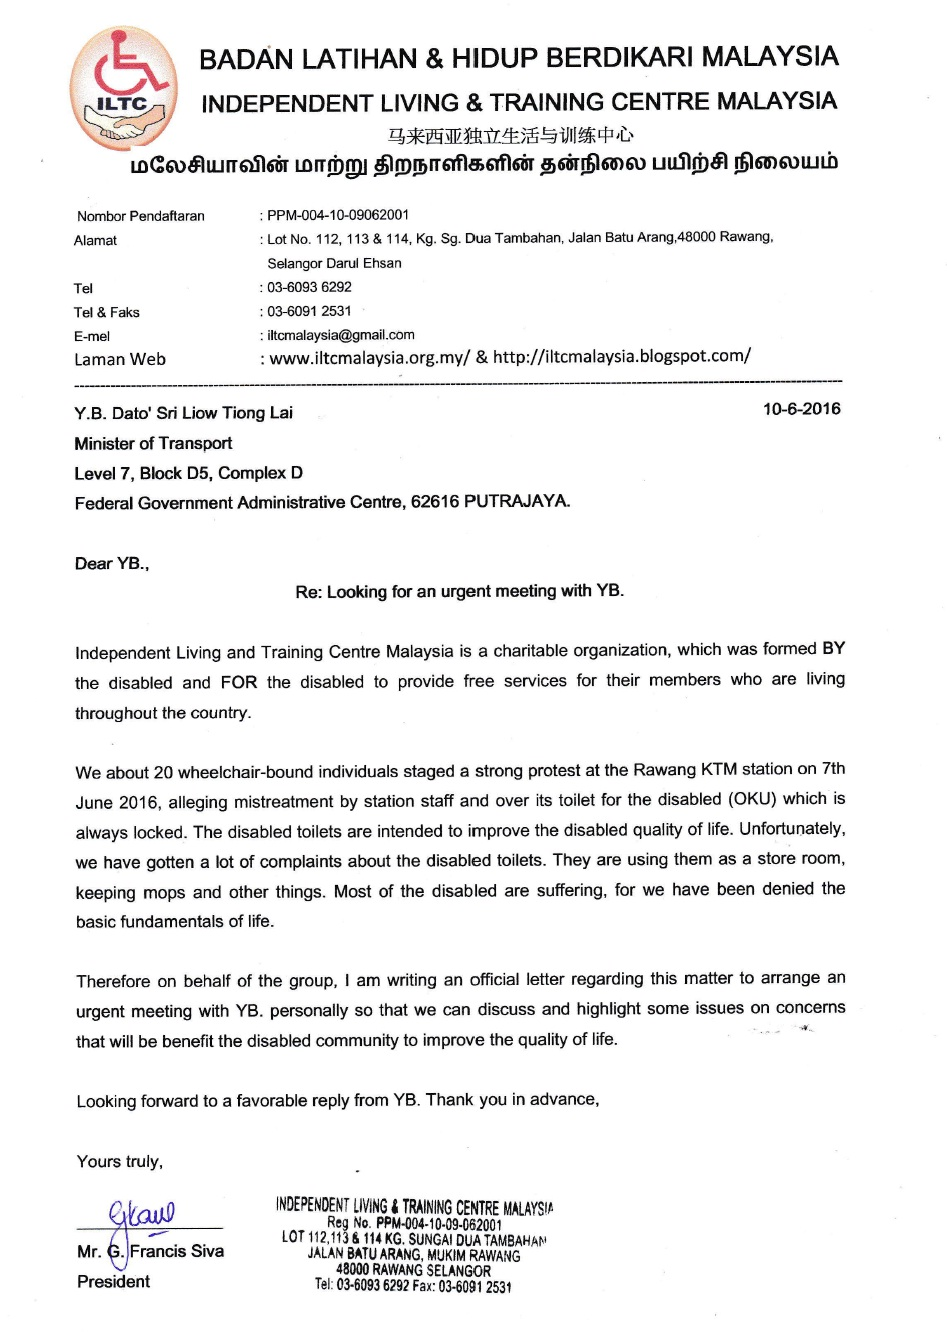 Iltc malaysia working to create a world as it should bew herewith i have attached an official letter seeking for an urgent meeting with yb altavistaventures